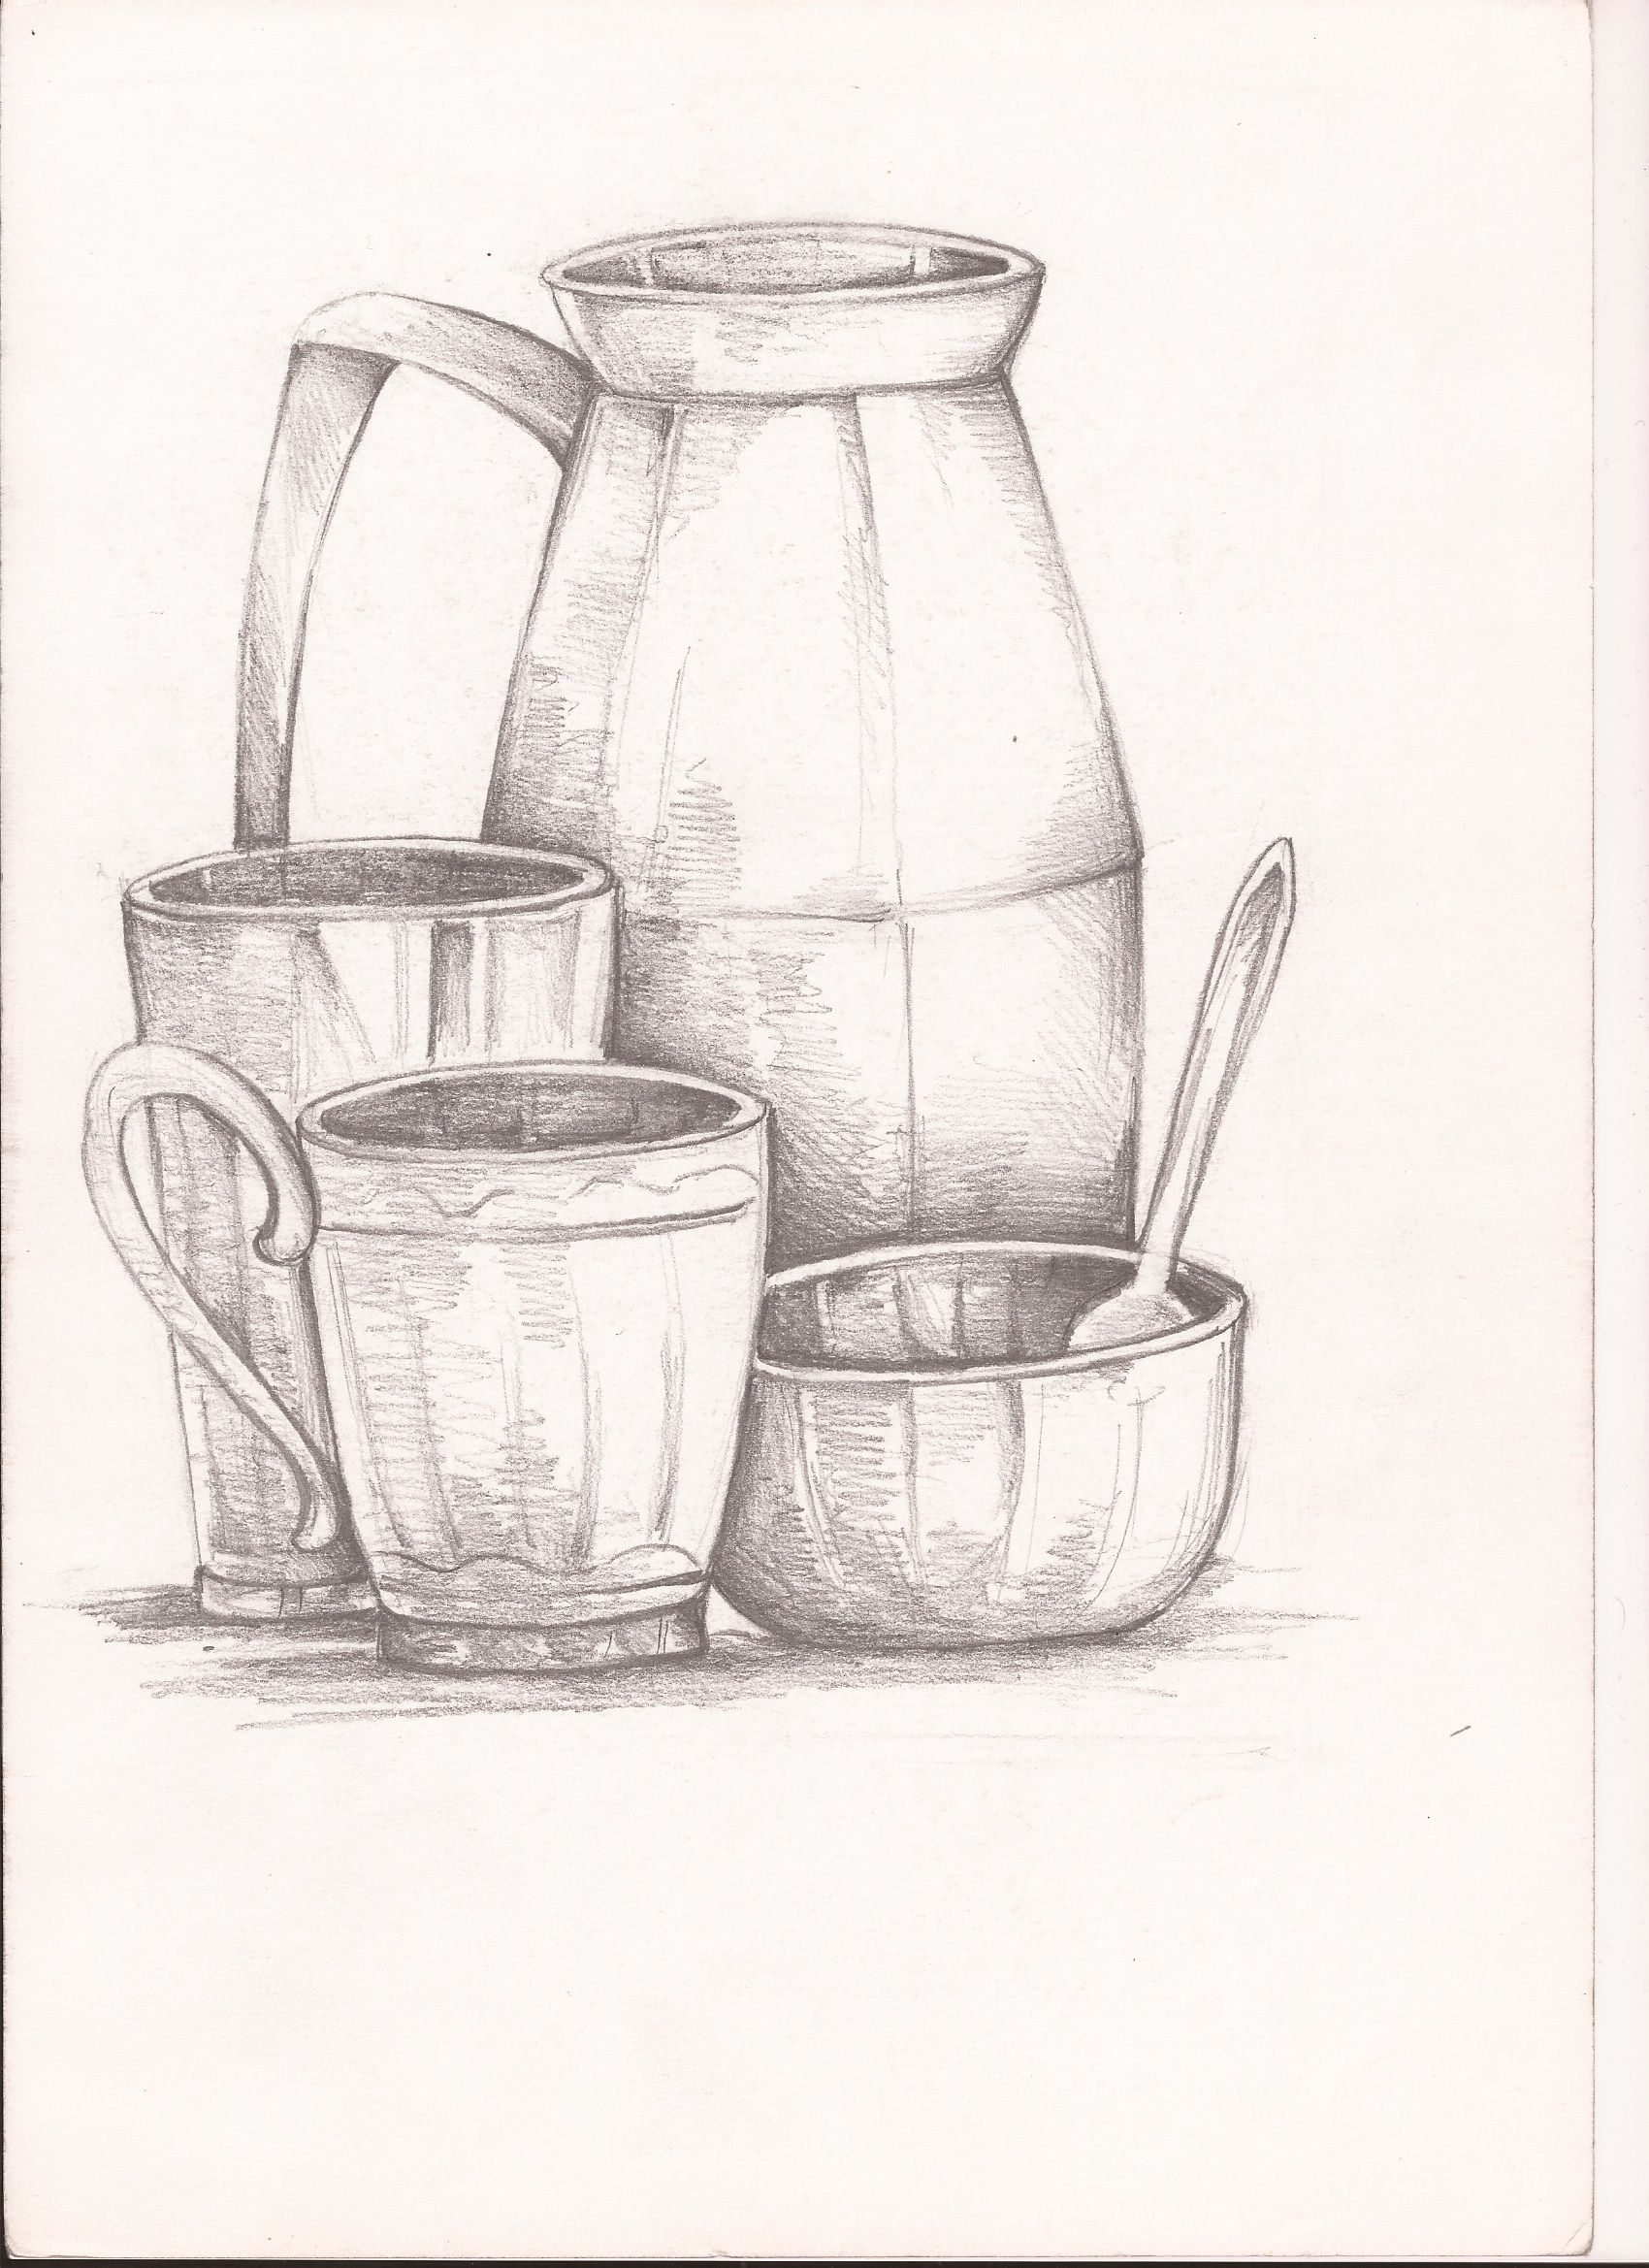 Still Life Sketching With Pencil For Sale If Interested